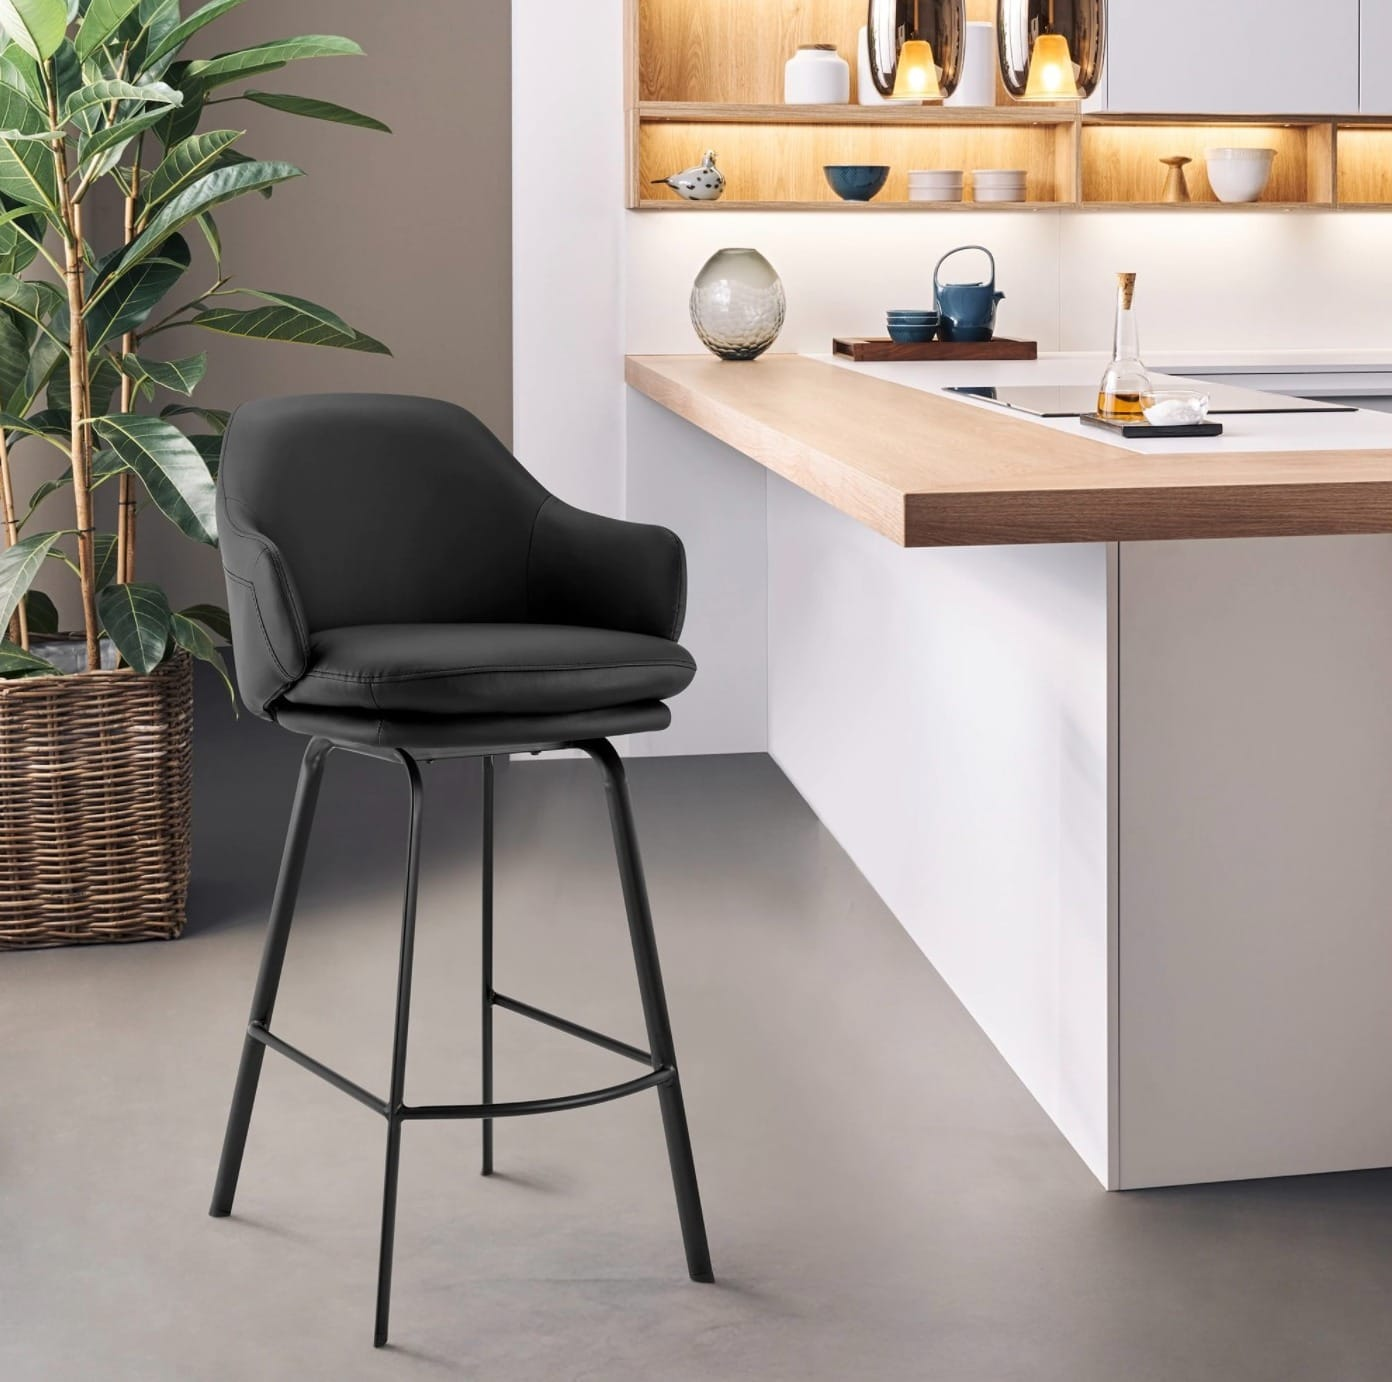 Add Some Luxury with these Faux Leather Counter Stools with Backs